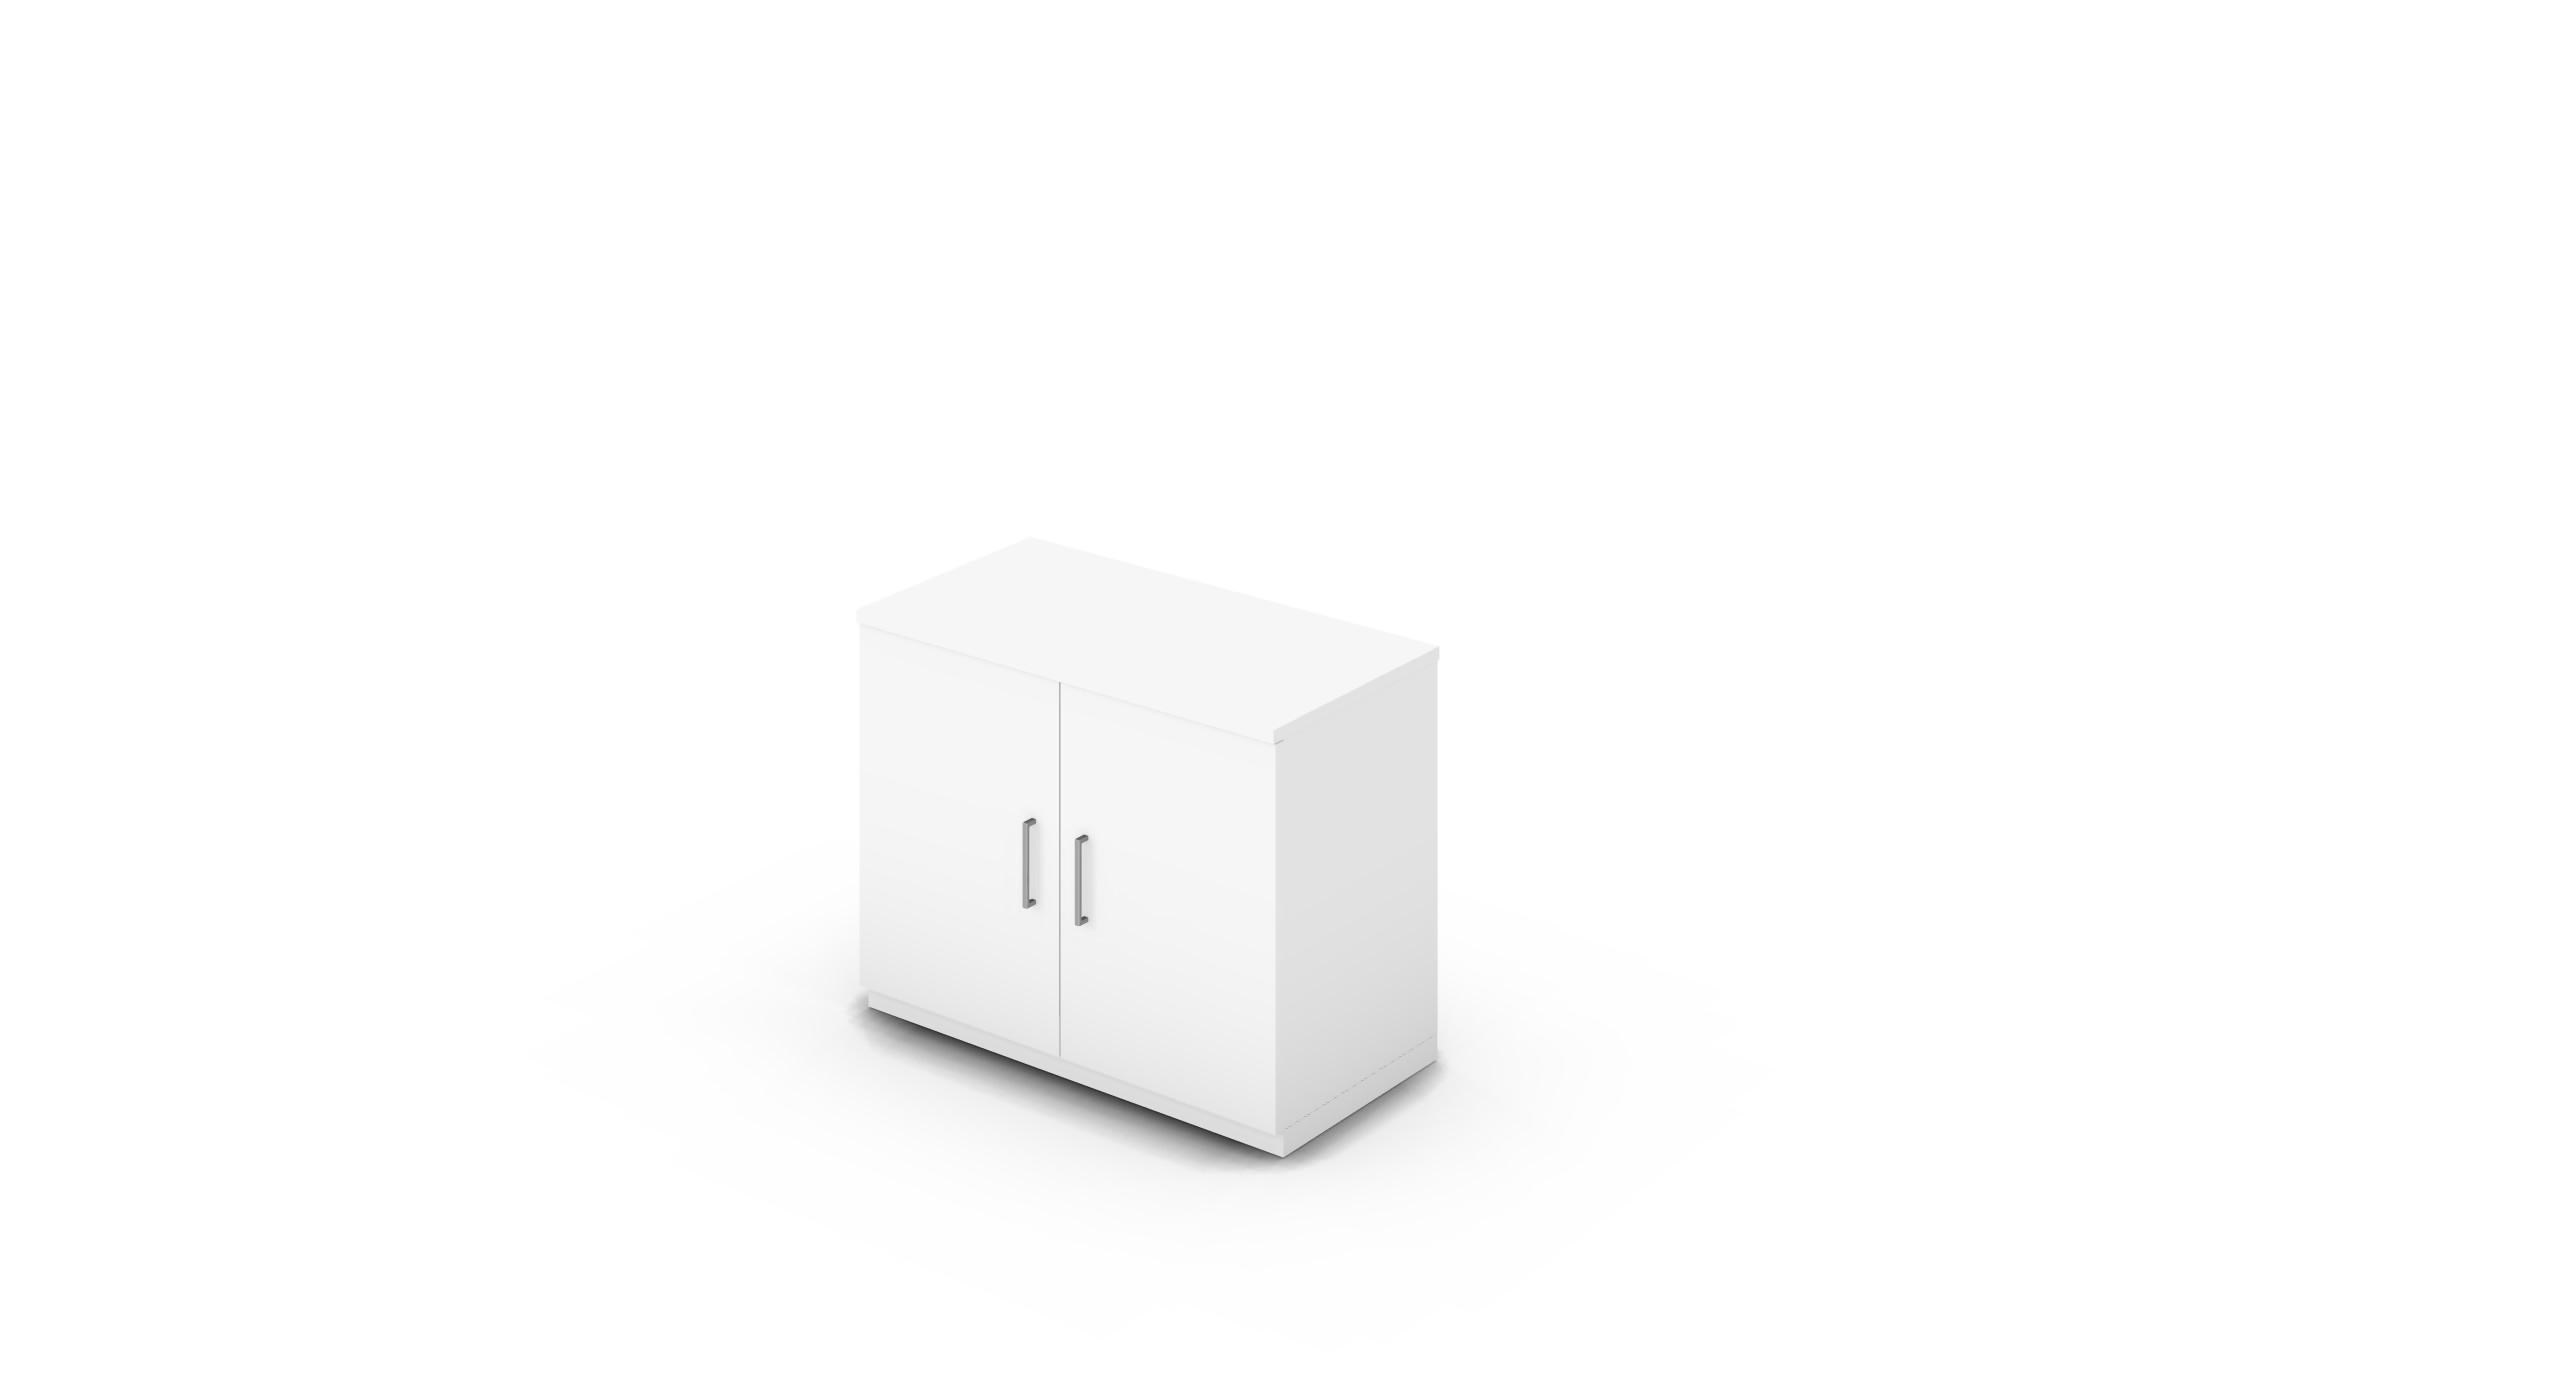 Cabinet_900x450x775_HD_White_Bar_Square_NoCylinder